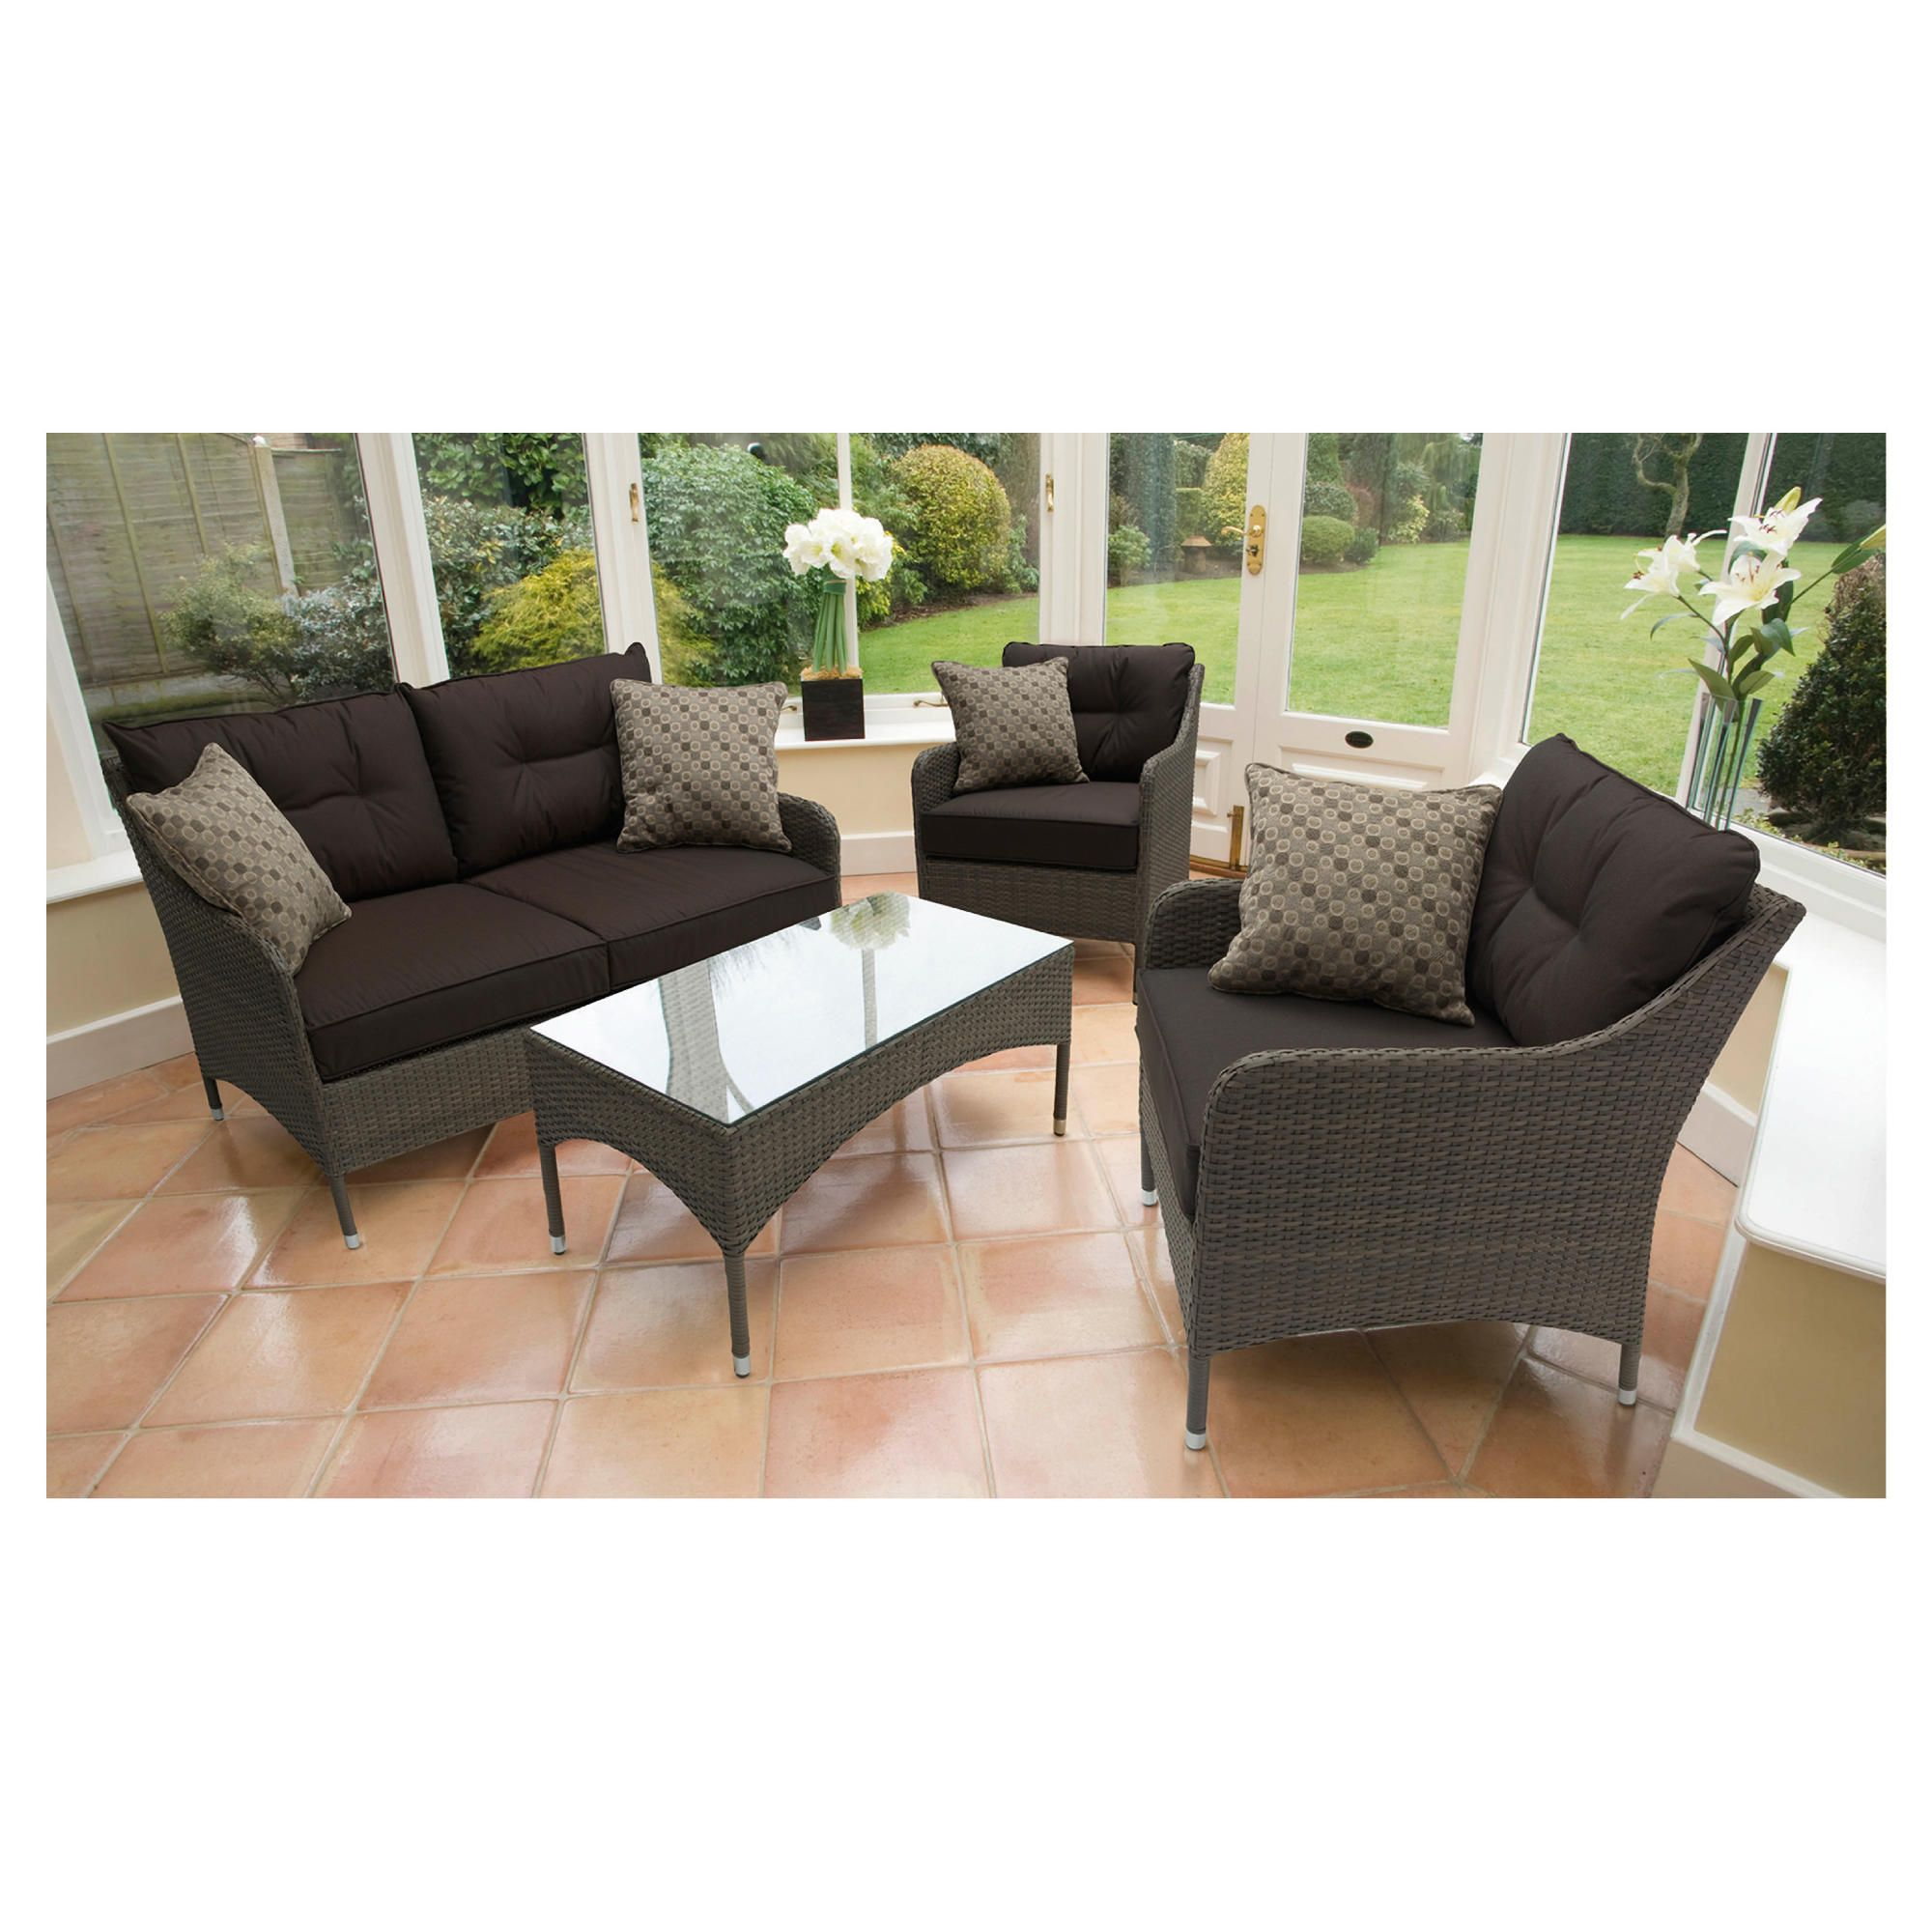 Homes & Garden 4 pc Lounge Set at Tesco Direct